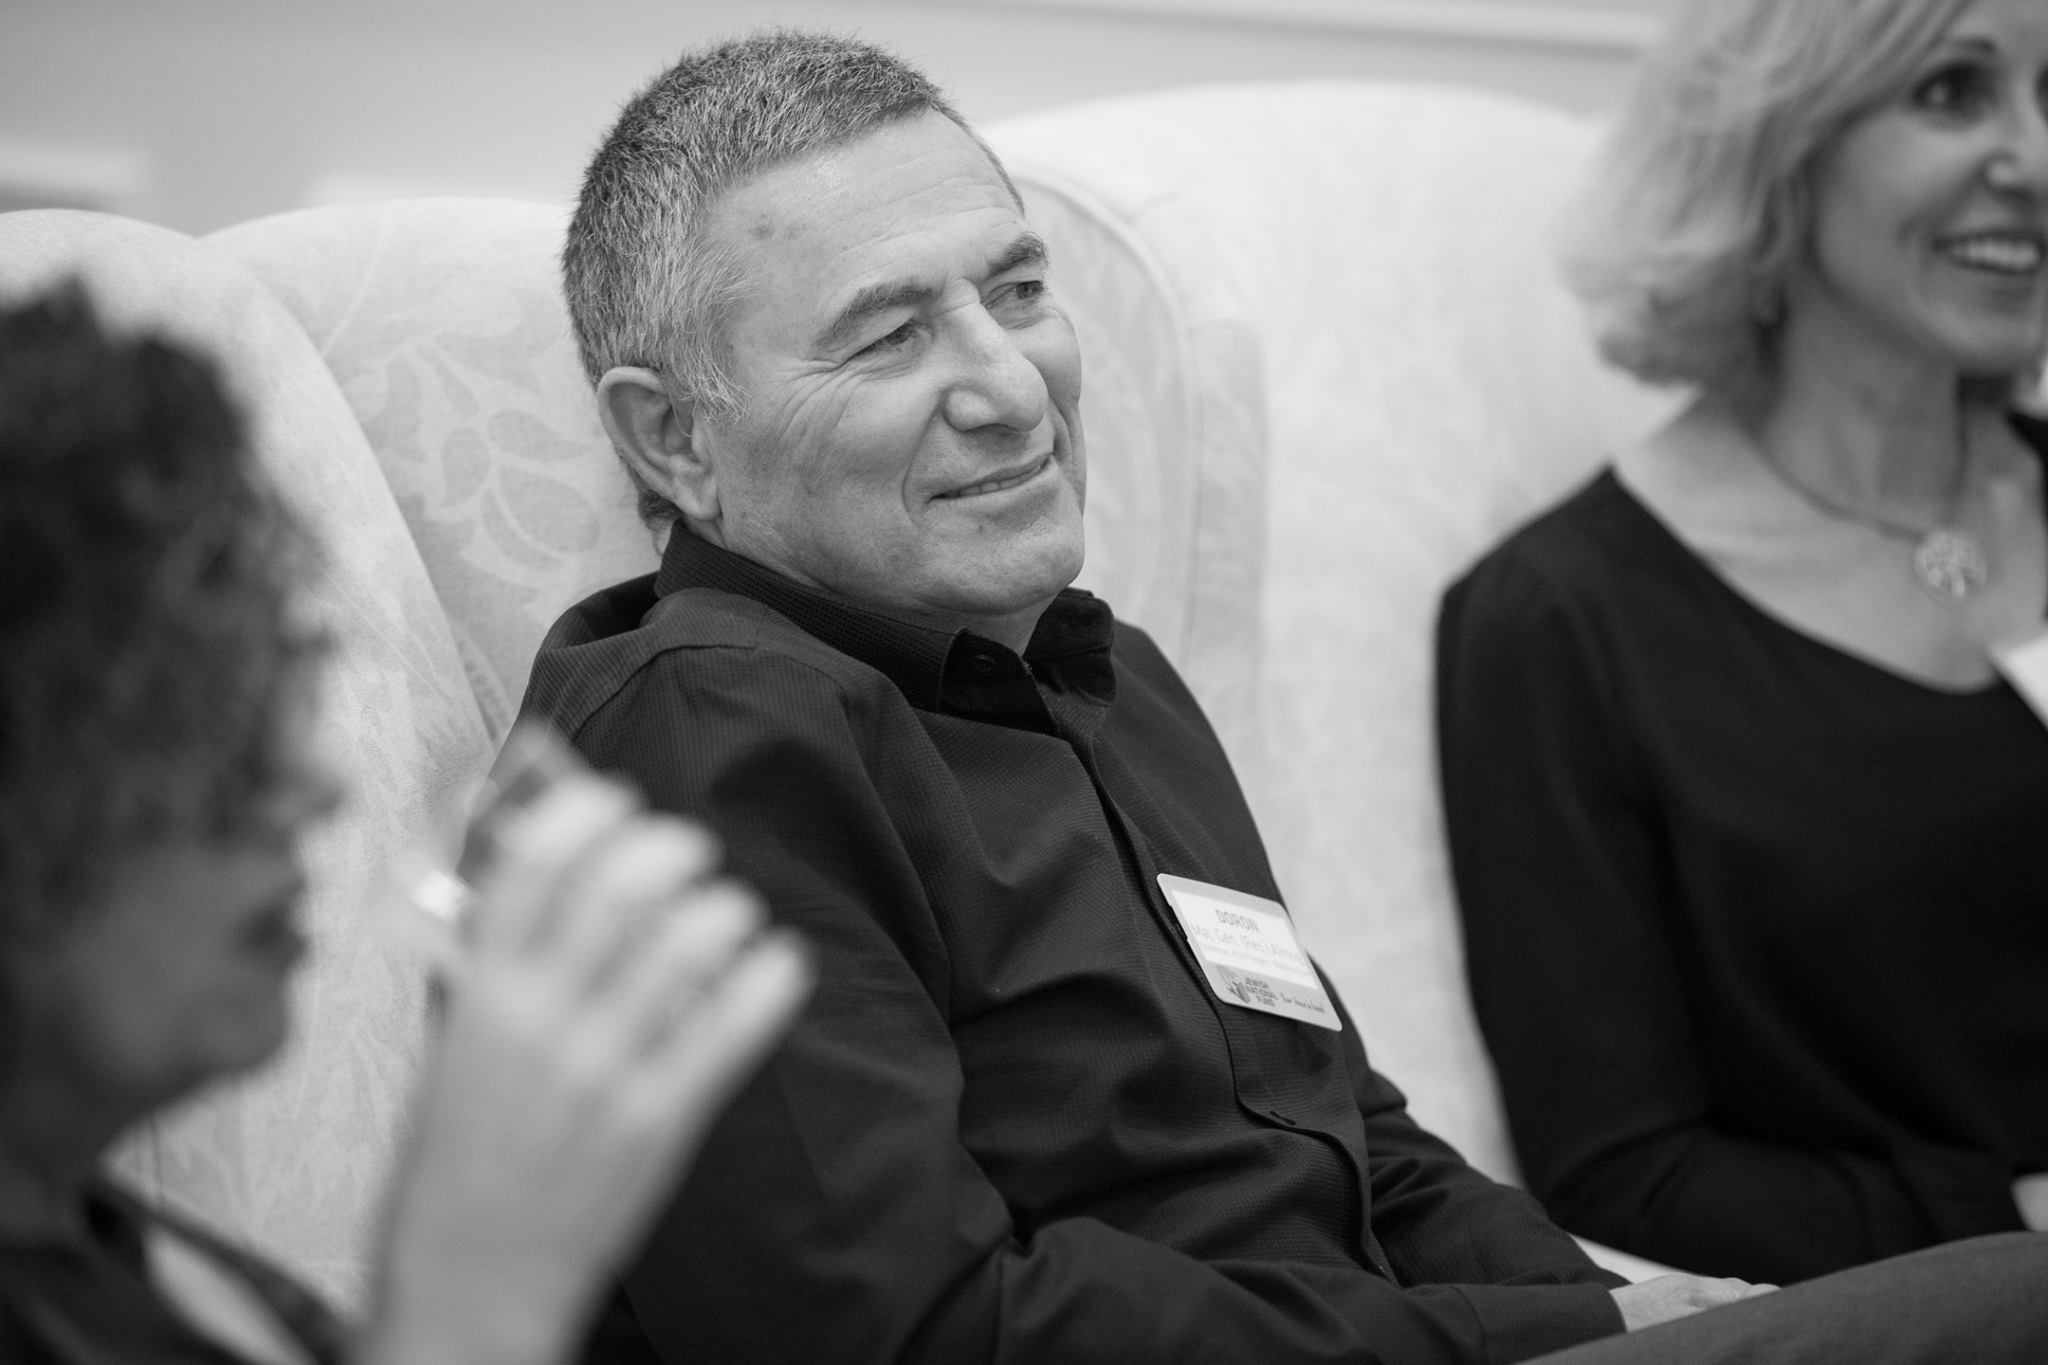 Israeli Major General Doron Almog who founded village for the disabled in southern Israel won Israel prize